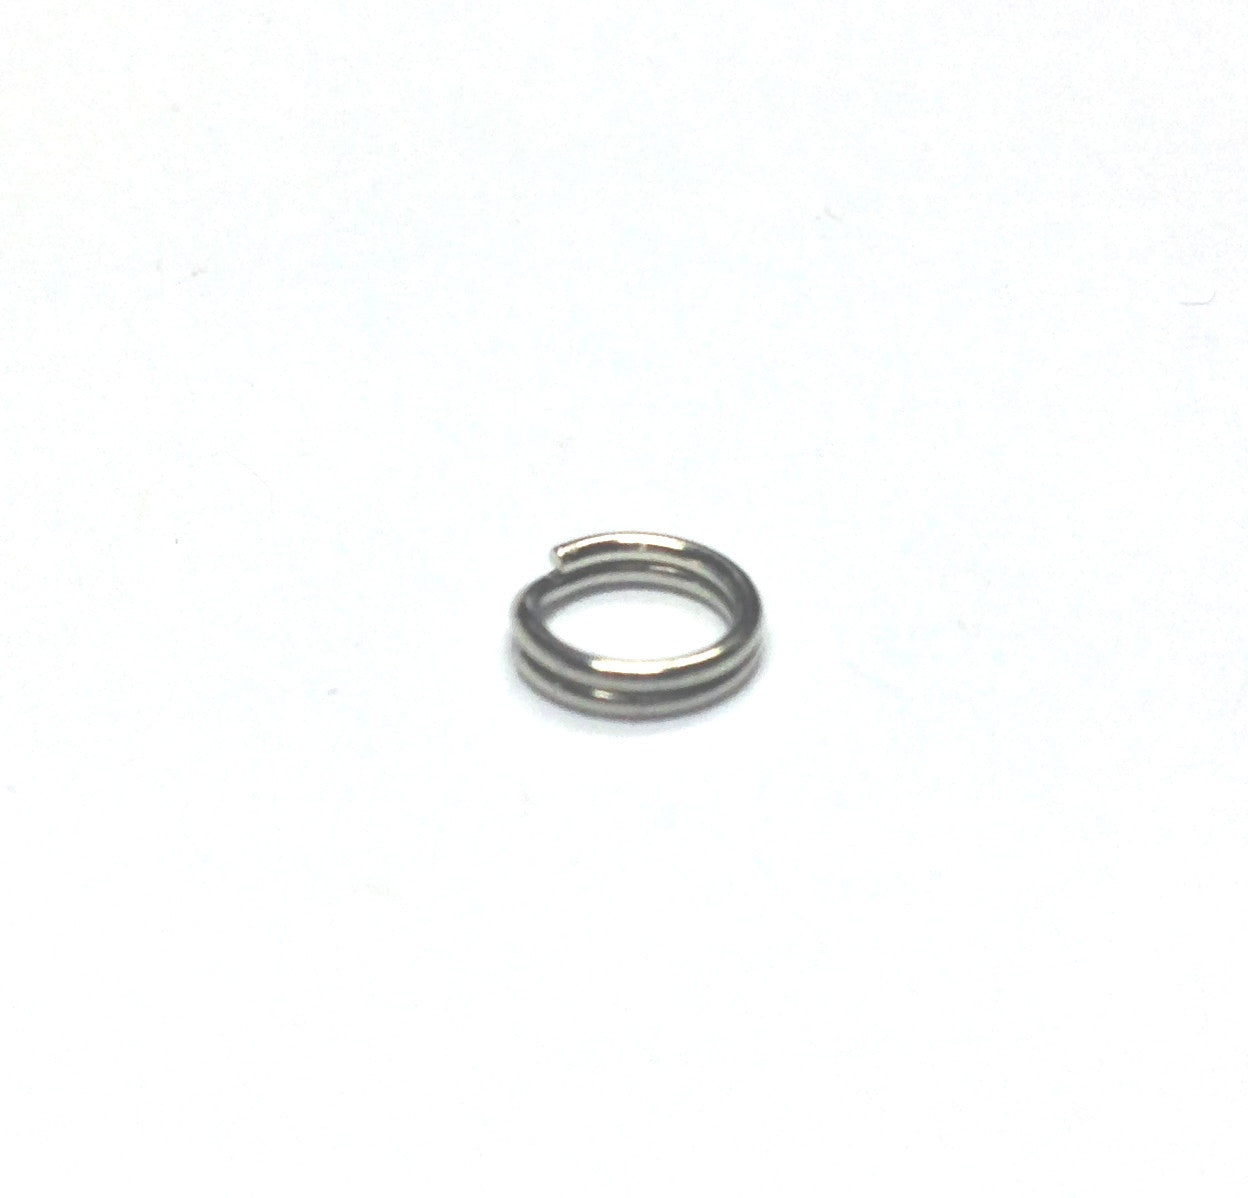 16MM Split Ring Nickel (144 pieces)